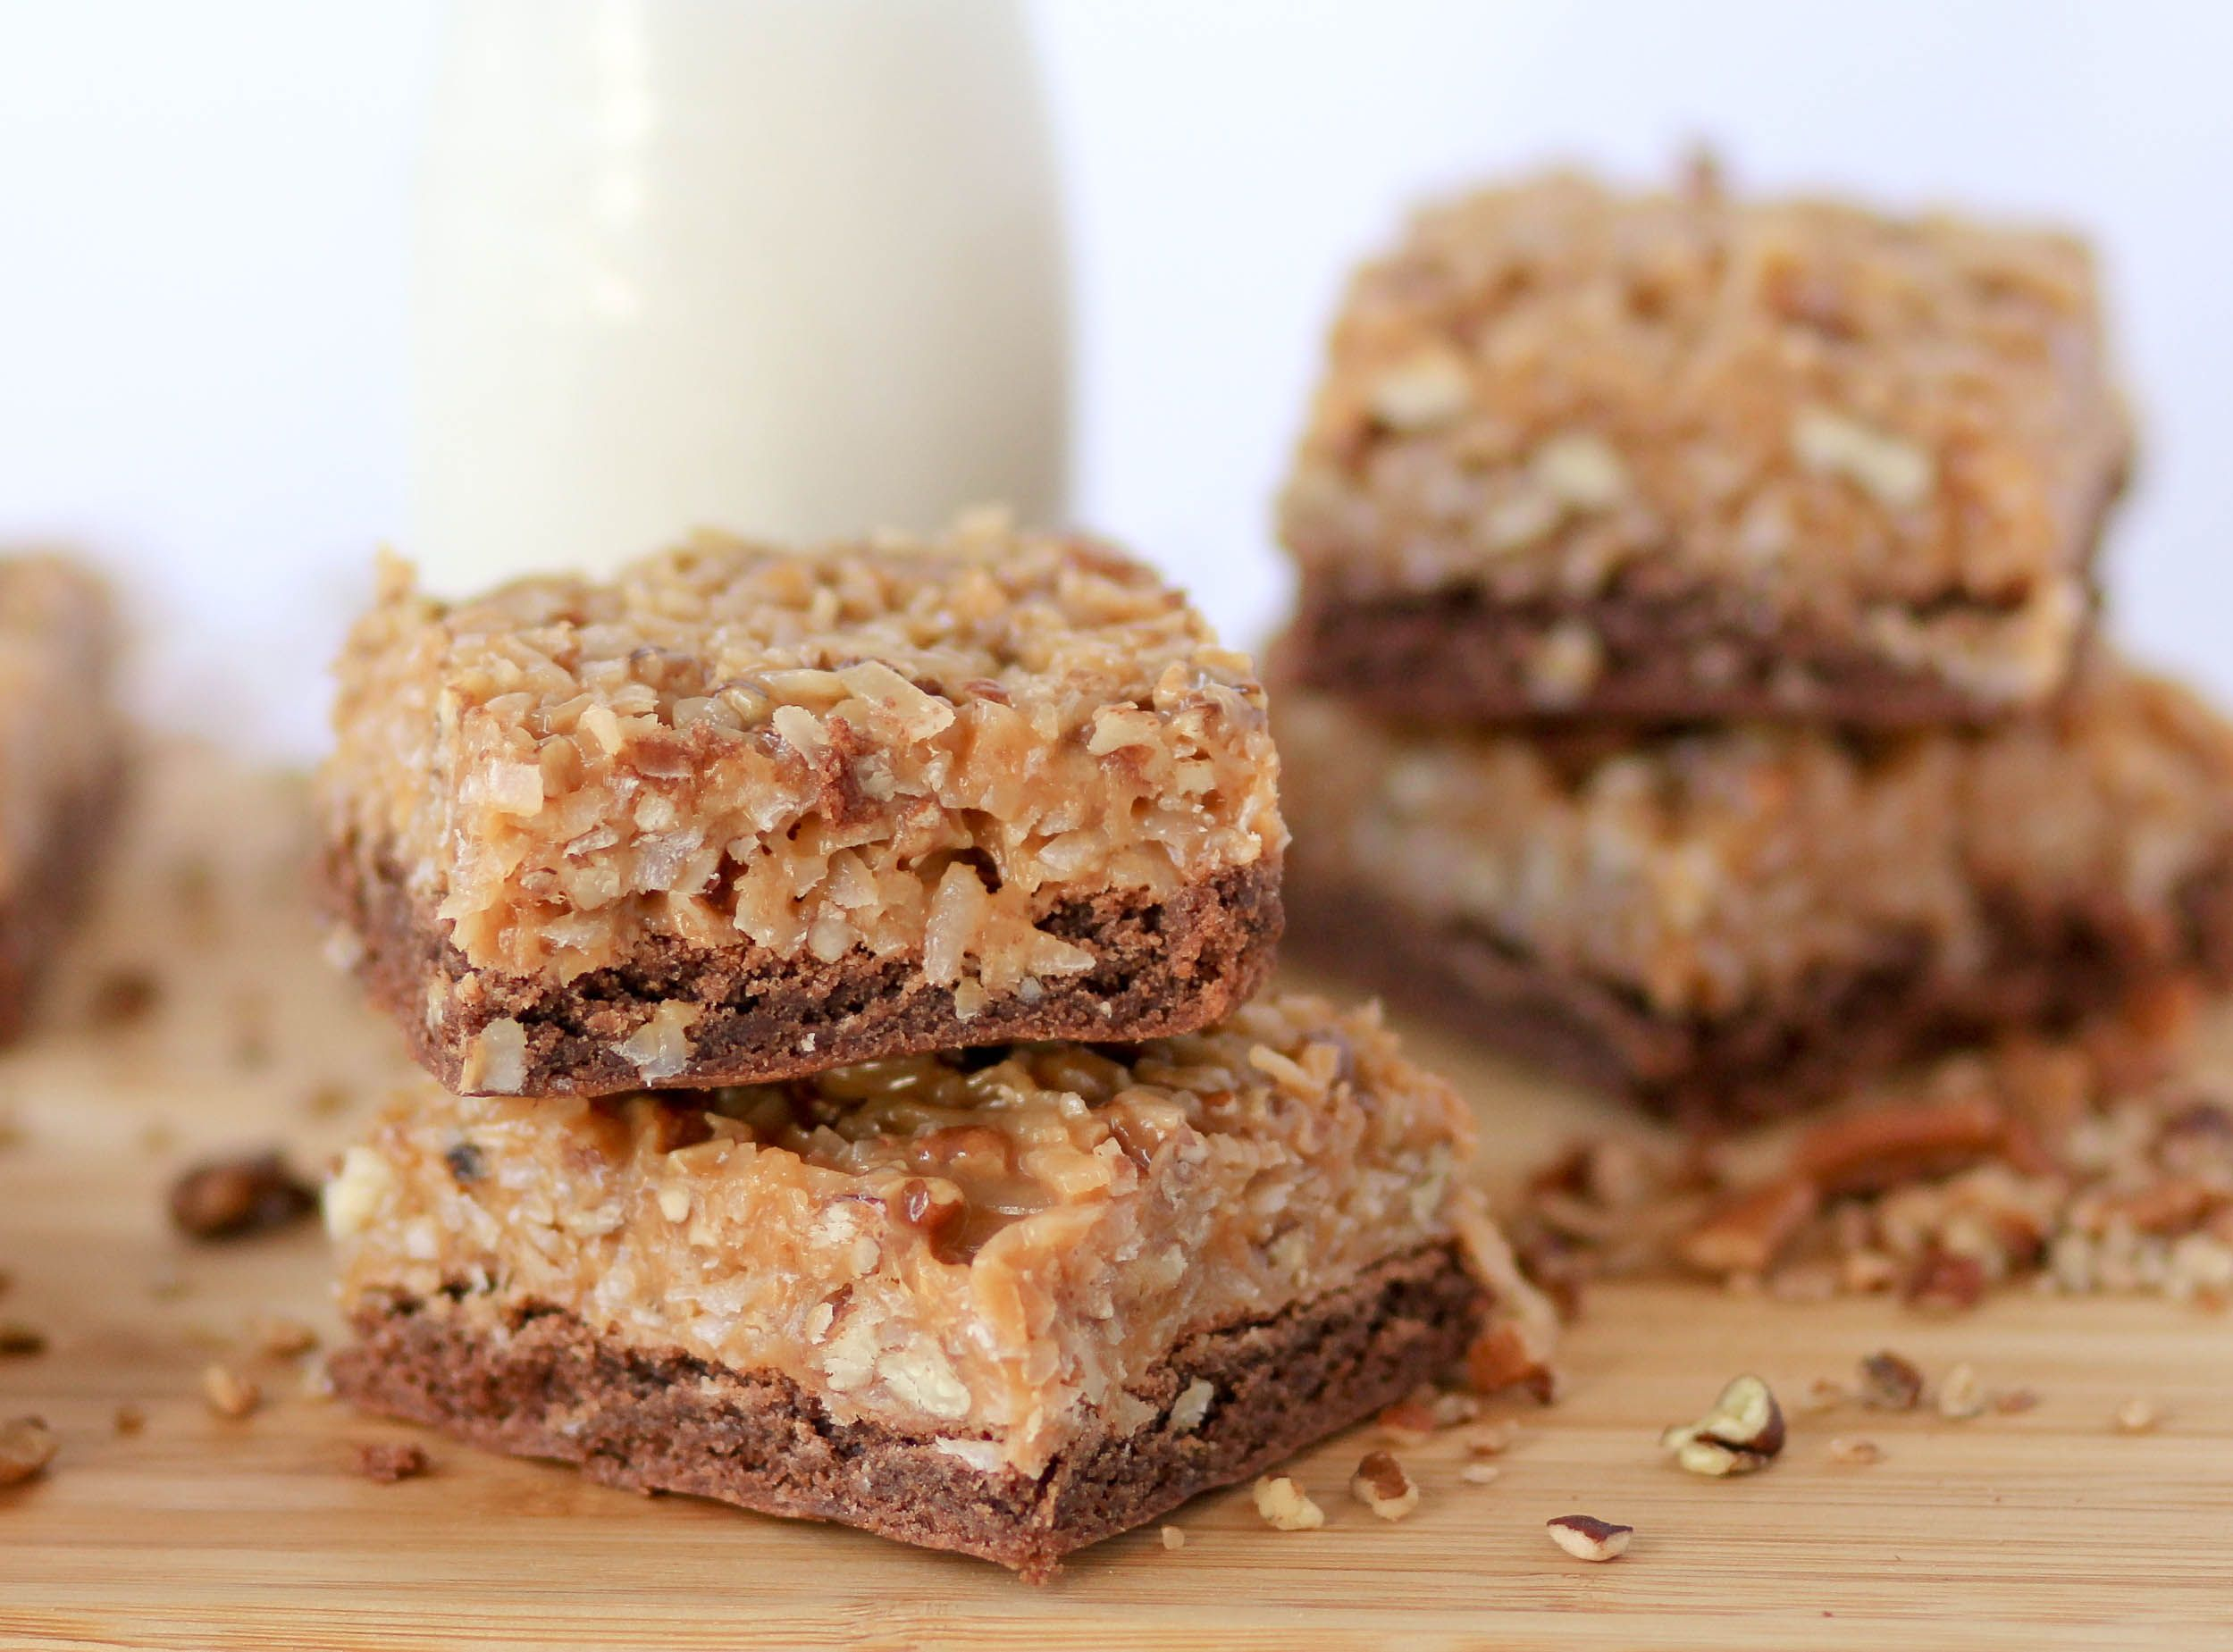 German chocolate cake bars confessions of a cookbook